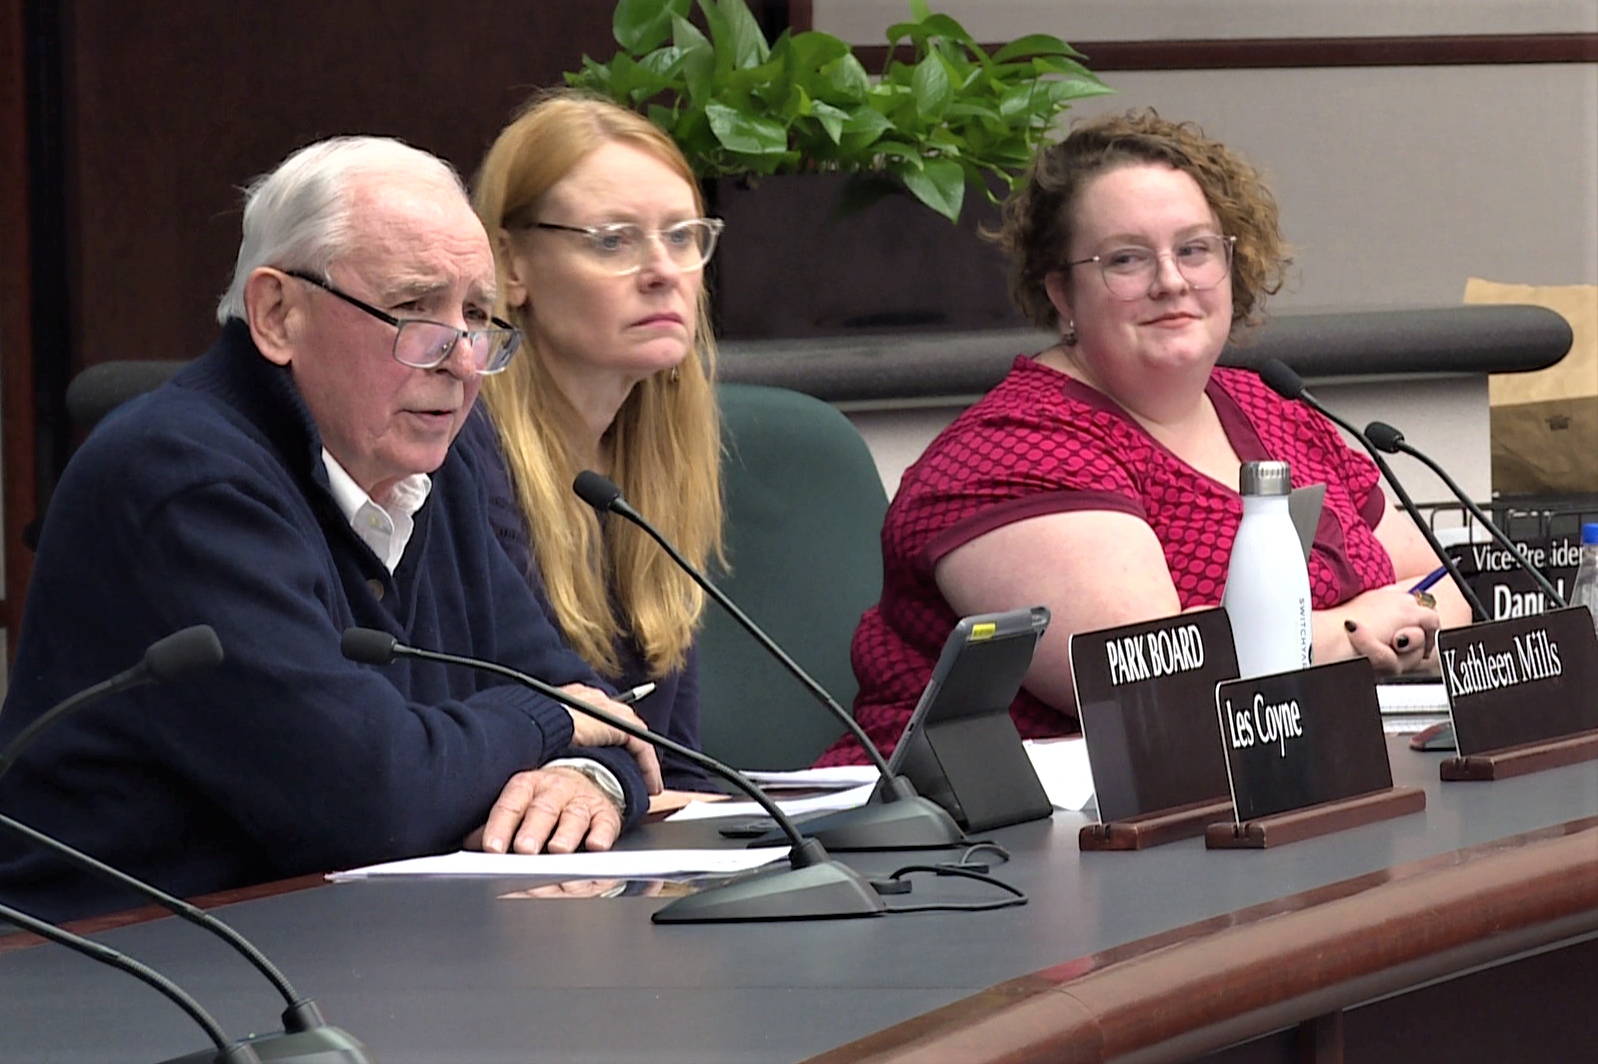 Les Coyne, Kathleen Mills and Lisa Thacker of the Bloomington Board of Parks Commissioners meeting on Jan. 9, 2019.